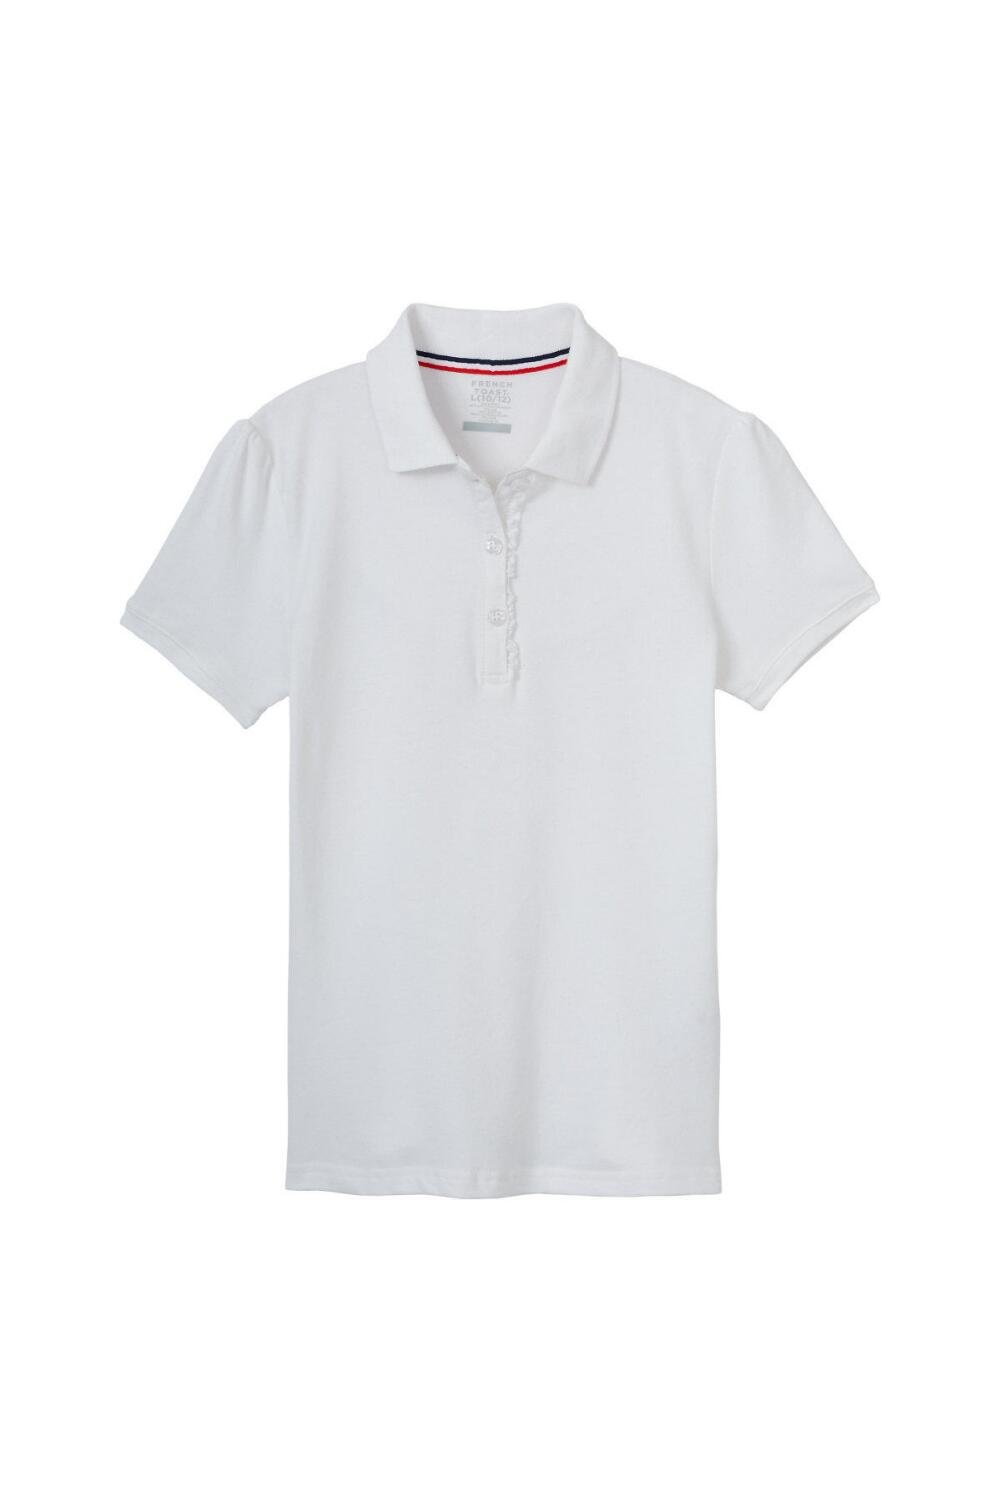 French Toast Toddler Girls' Short Sleeve Stretch Ruffle Polo, White, 4T